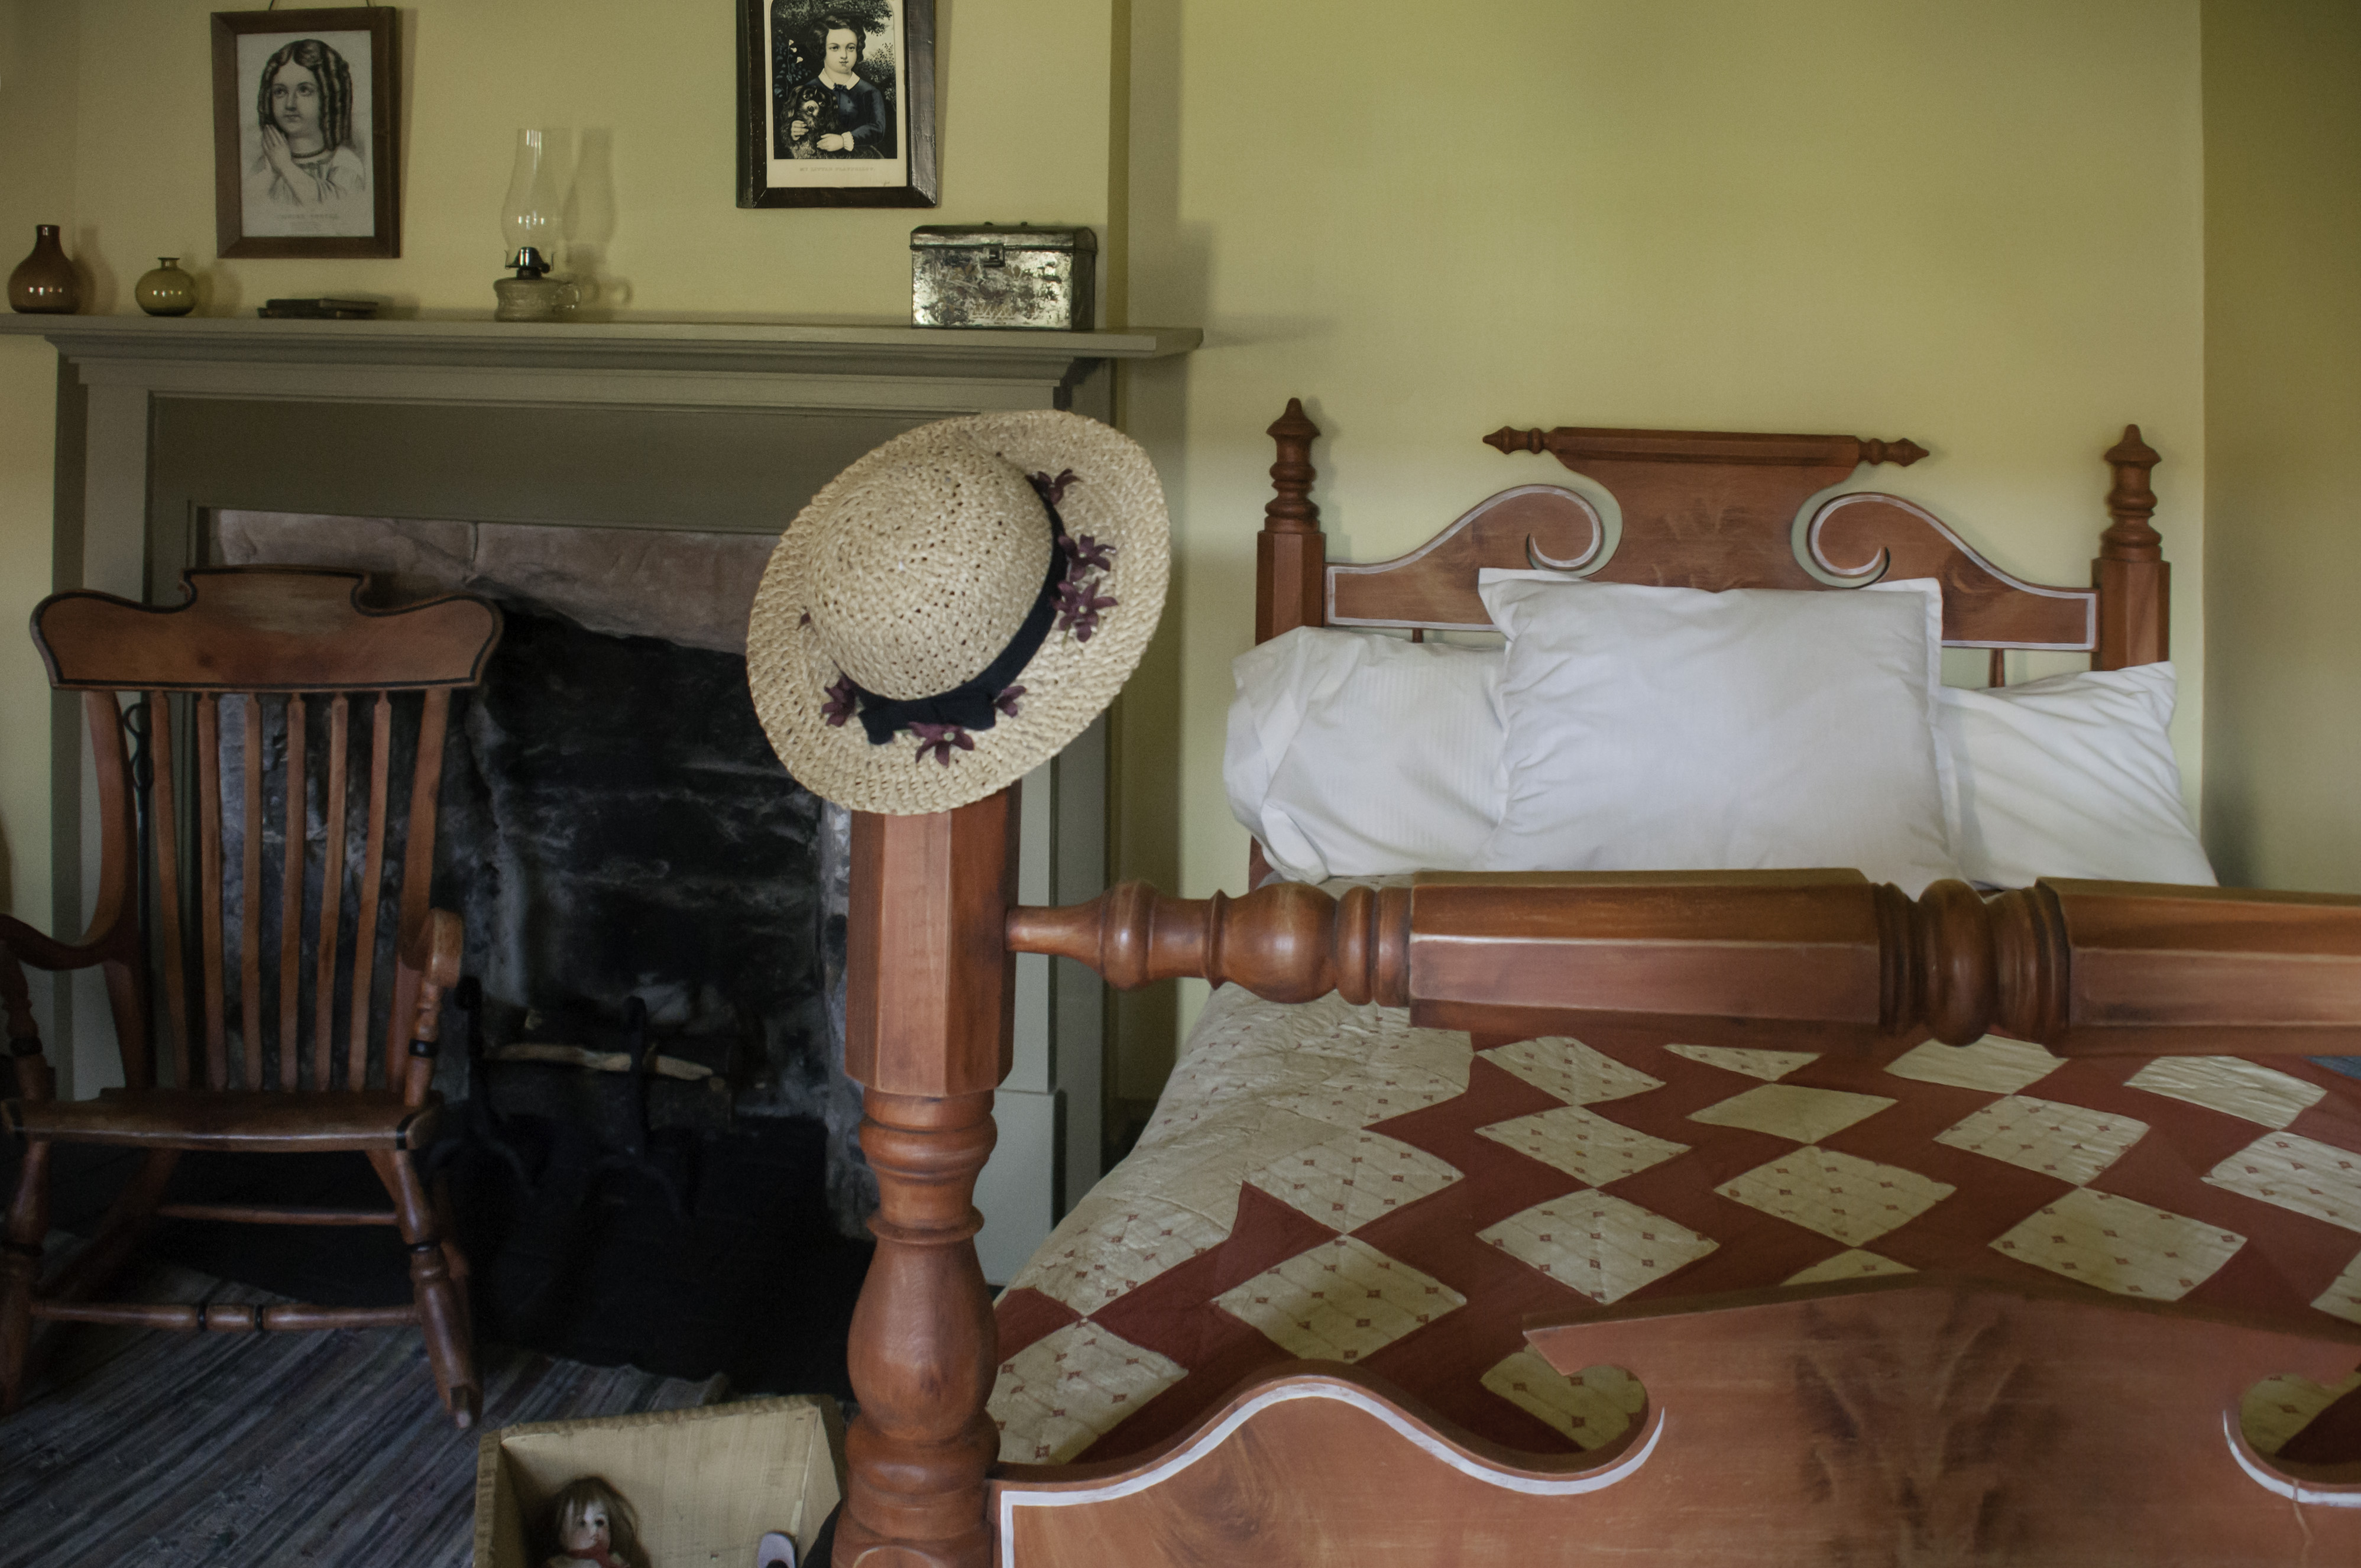 Bedroom in Cove Fort Museum shows coverlets either loomed with the date crafted into them or painstakingly quilted. Cove Fort Historical Site, Millard County, Utah, June 25, 2016 | Photo by Kathleen Lillywhite, St. George News